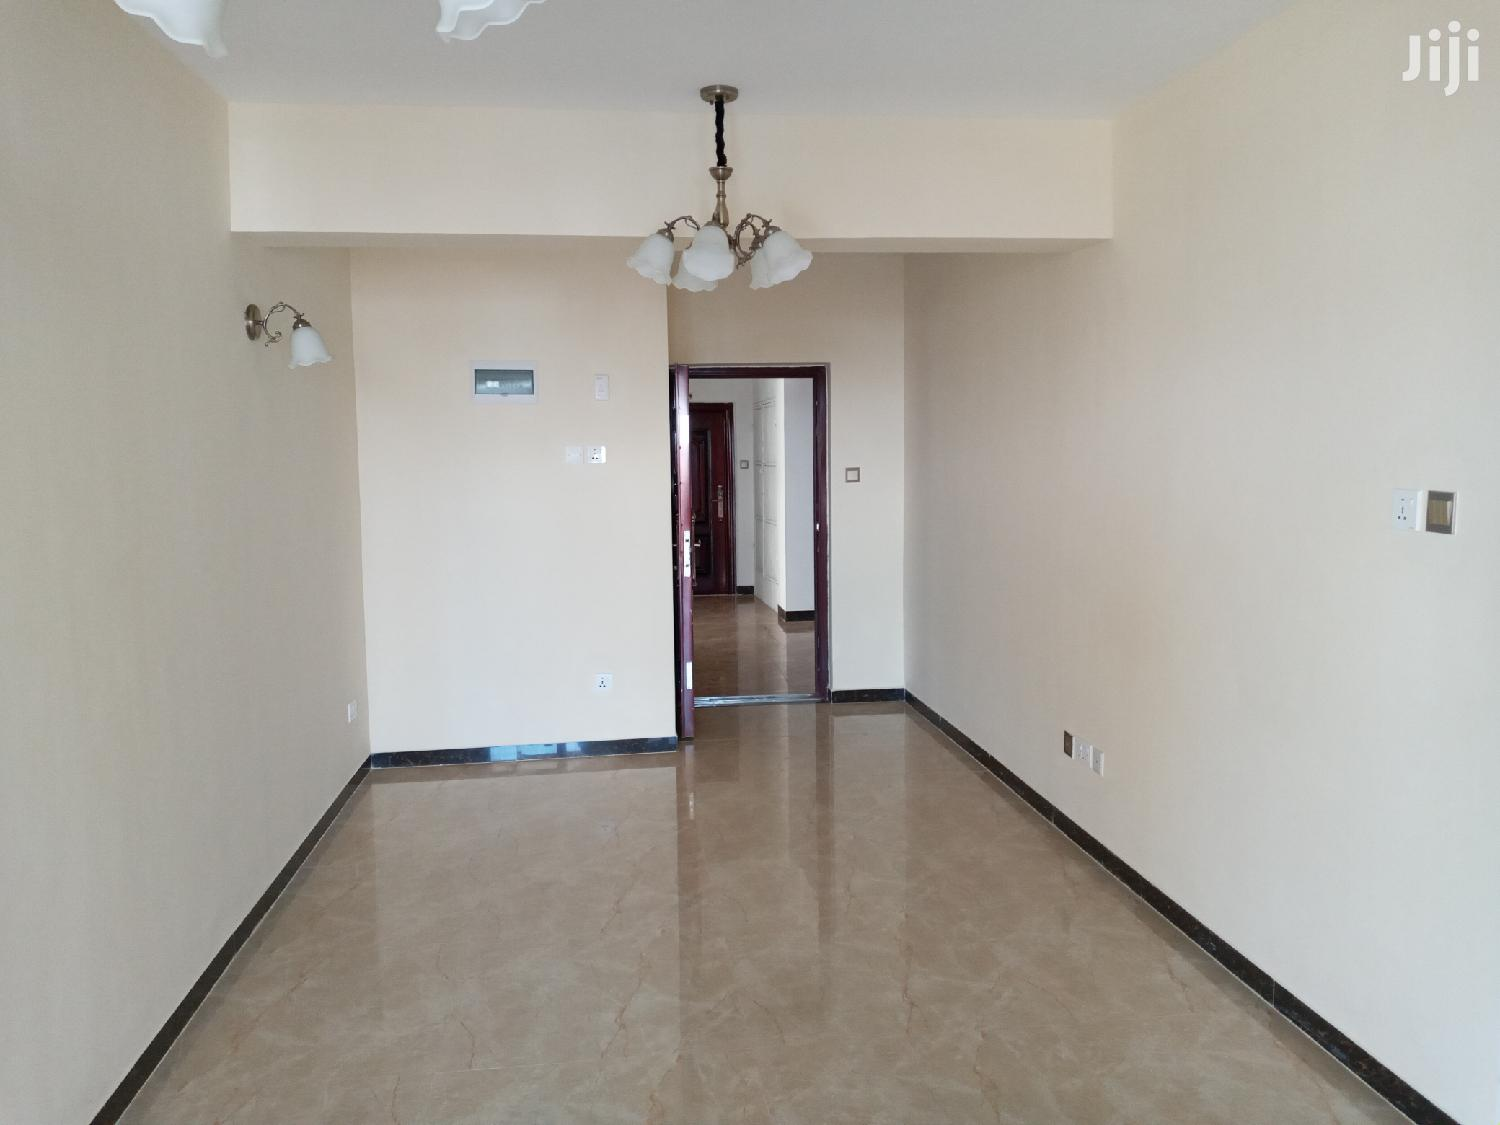 2 Bedroom Penthouse for Sale | Houses & Apartments For Sale for sale in Kilimani, Nairobi, Kenya